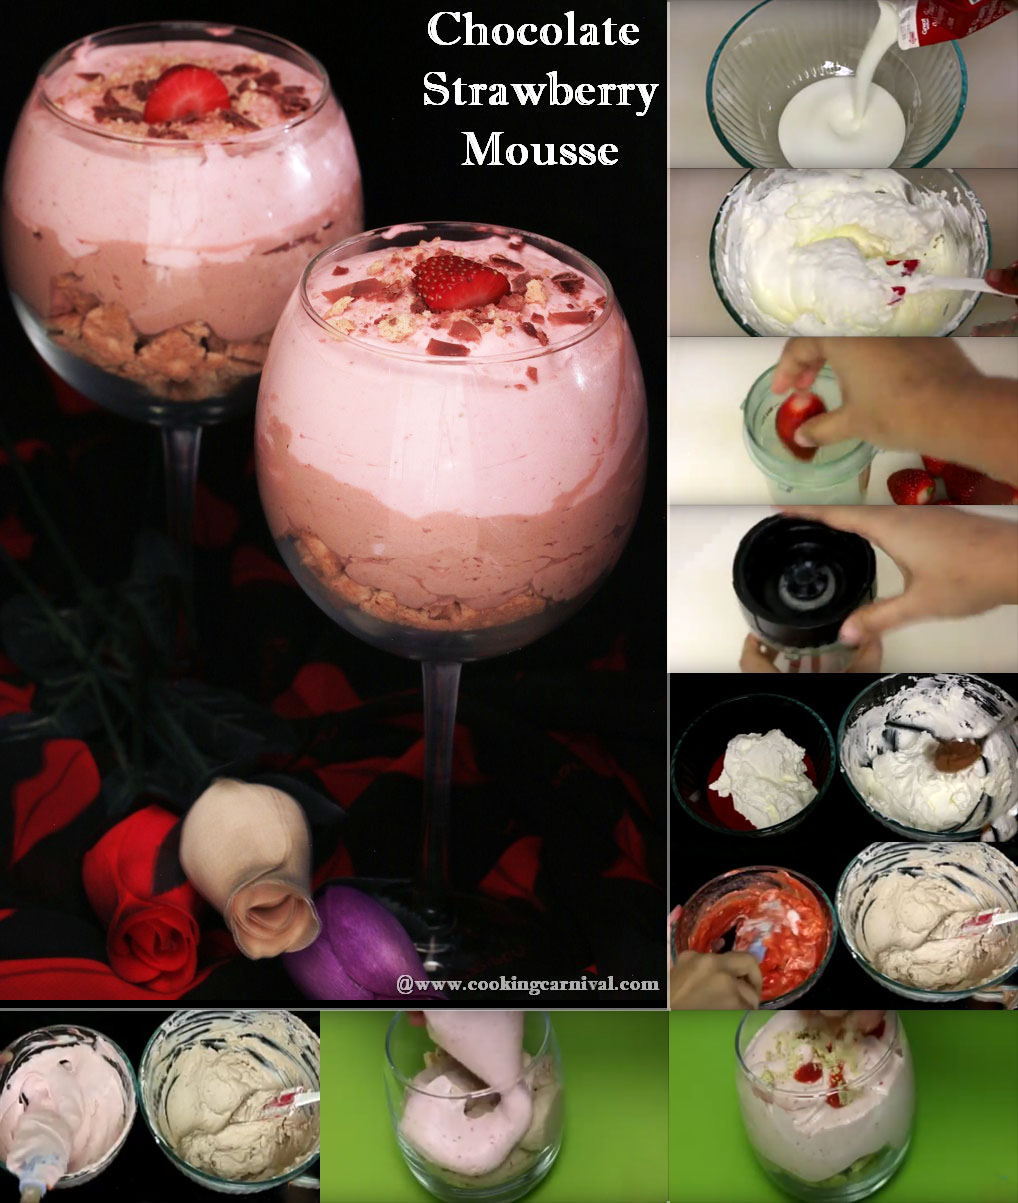 Chocolate Strawberry Mousse recipe step by step